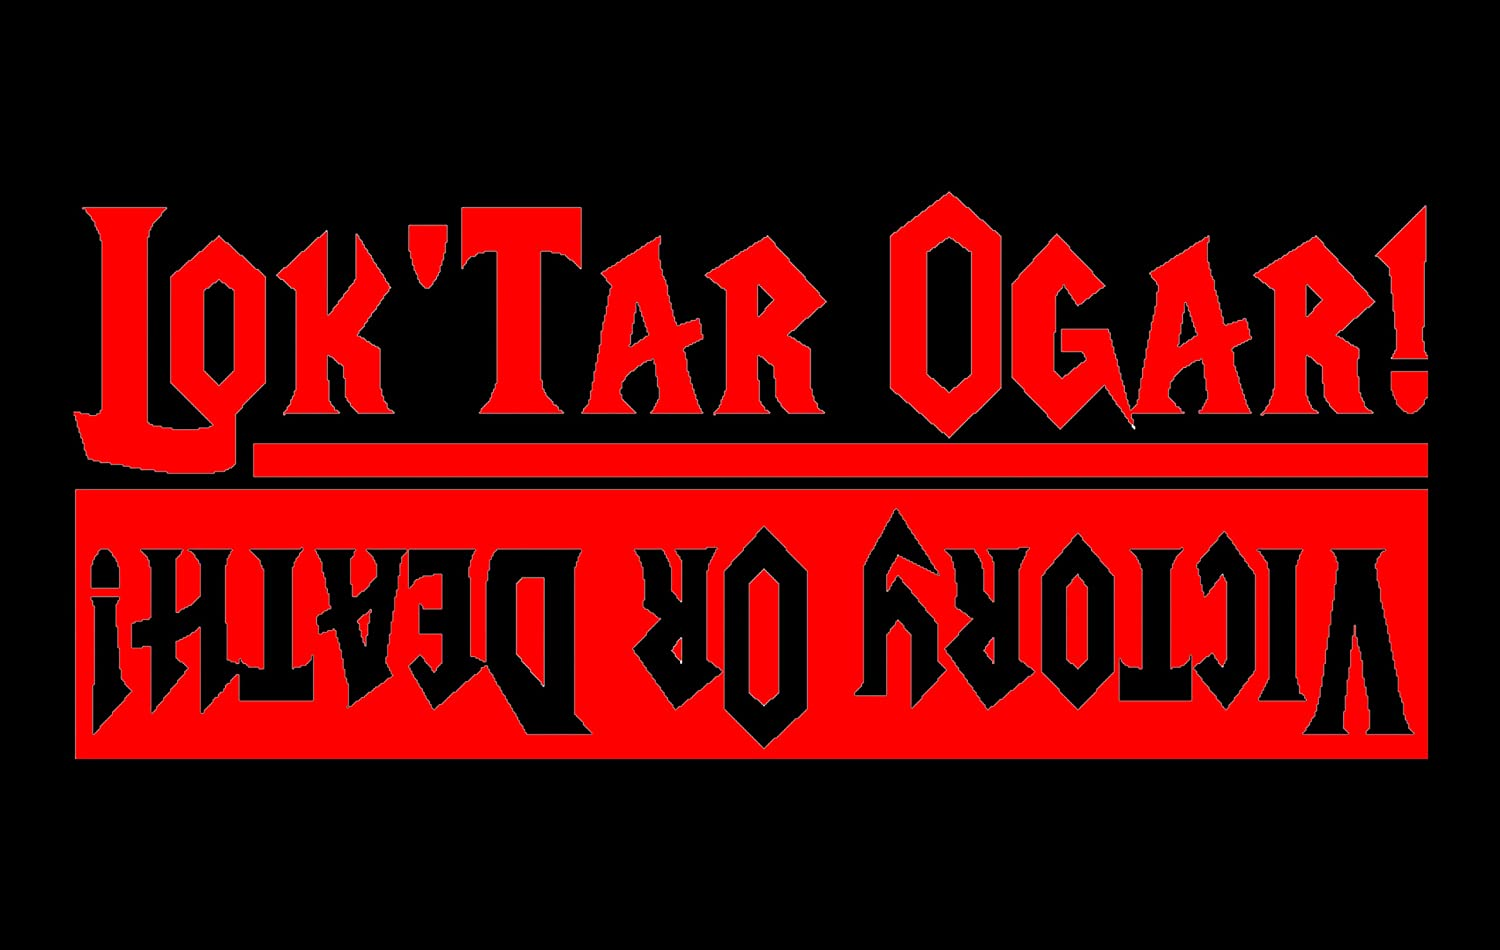 Lok Tar Ogar Decal Victory Or Death Sticker For The Horde Bumper Sticker Wow Decal H 4 5 By L 12 Inches Red Amazon In Car Motorbike Lok'tar ogar is an 'orcish' warcry meaning victory or death. lok tar ogar decal victory or death sticker for the horde bumper sticker wow decal h 4 5 by l 12 inches red